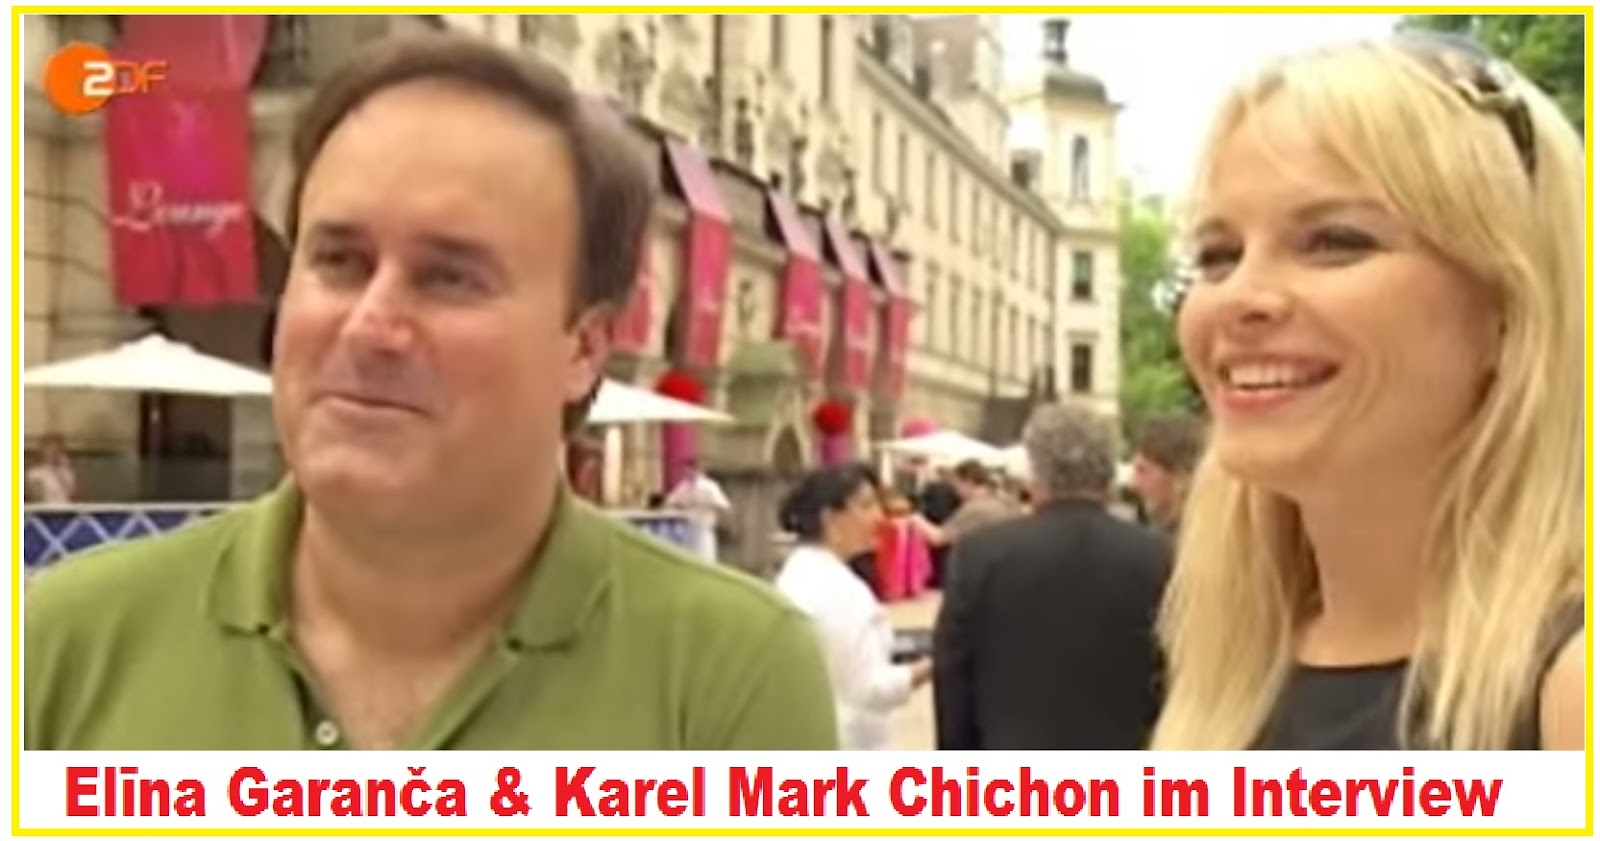 008 Elīna Garanča & Karel Mark Chichon im Interview.jpg